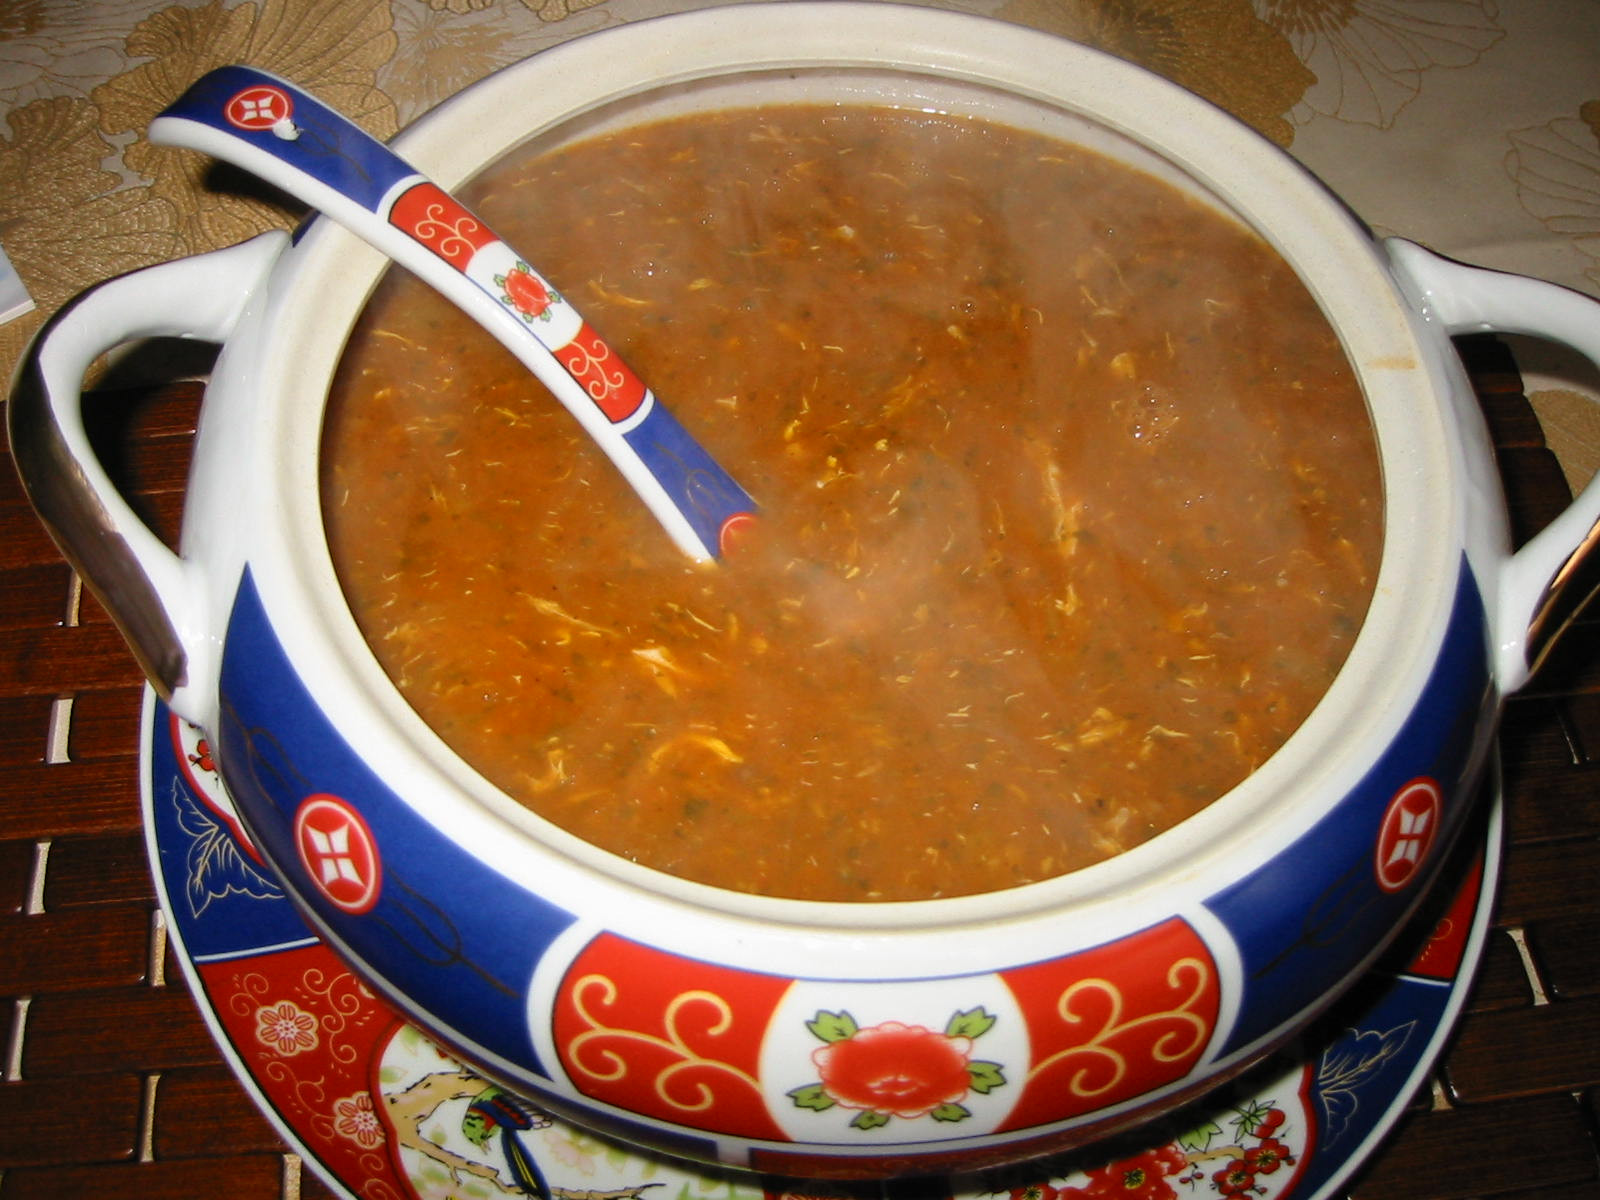 Recette de harira soupe marocaine holidays oo for Cuisine traditionnelle